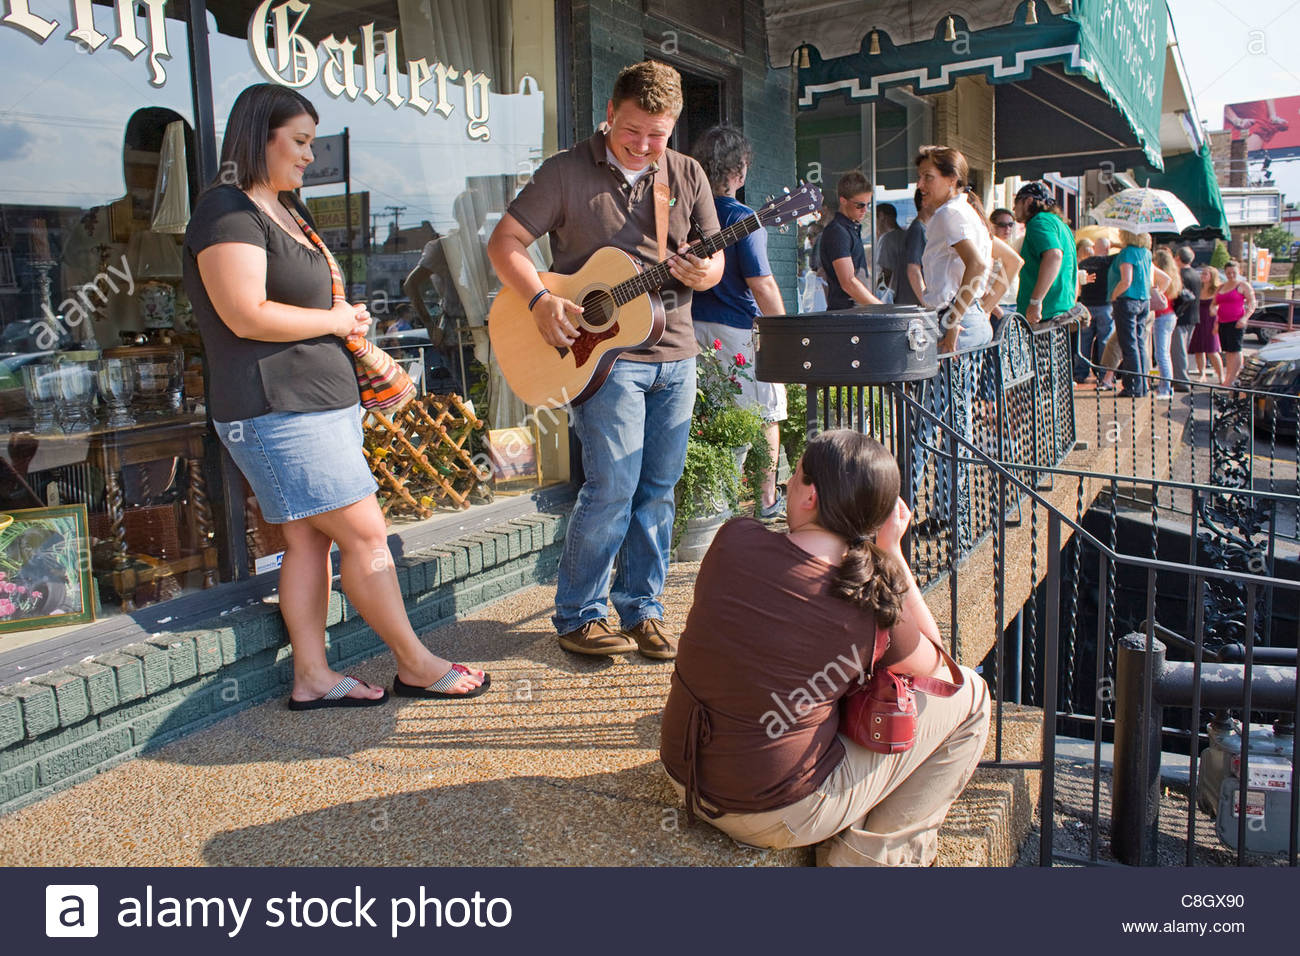 Musicians warm up outside the Bluebird Cafe for open mic tryouts. - Stock Image